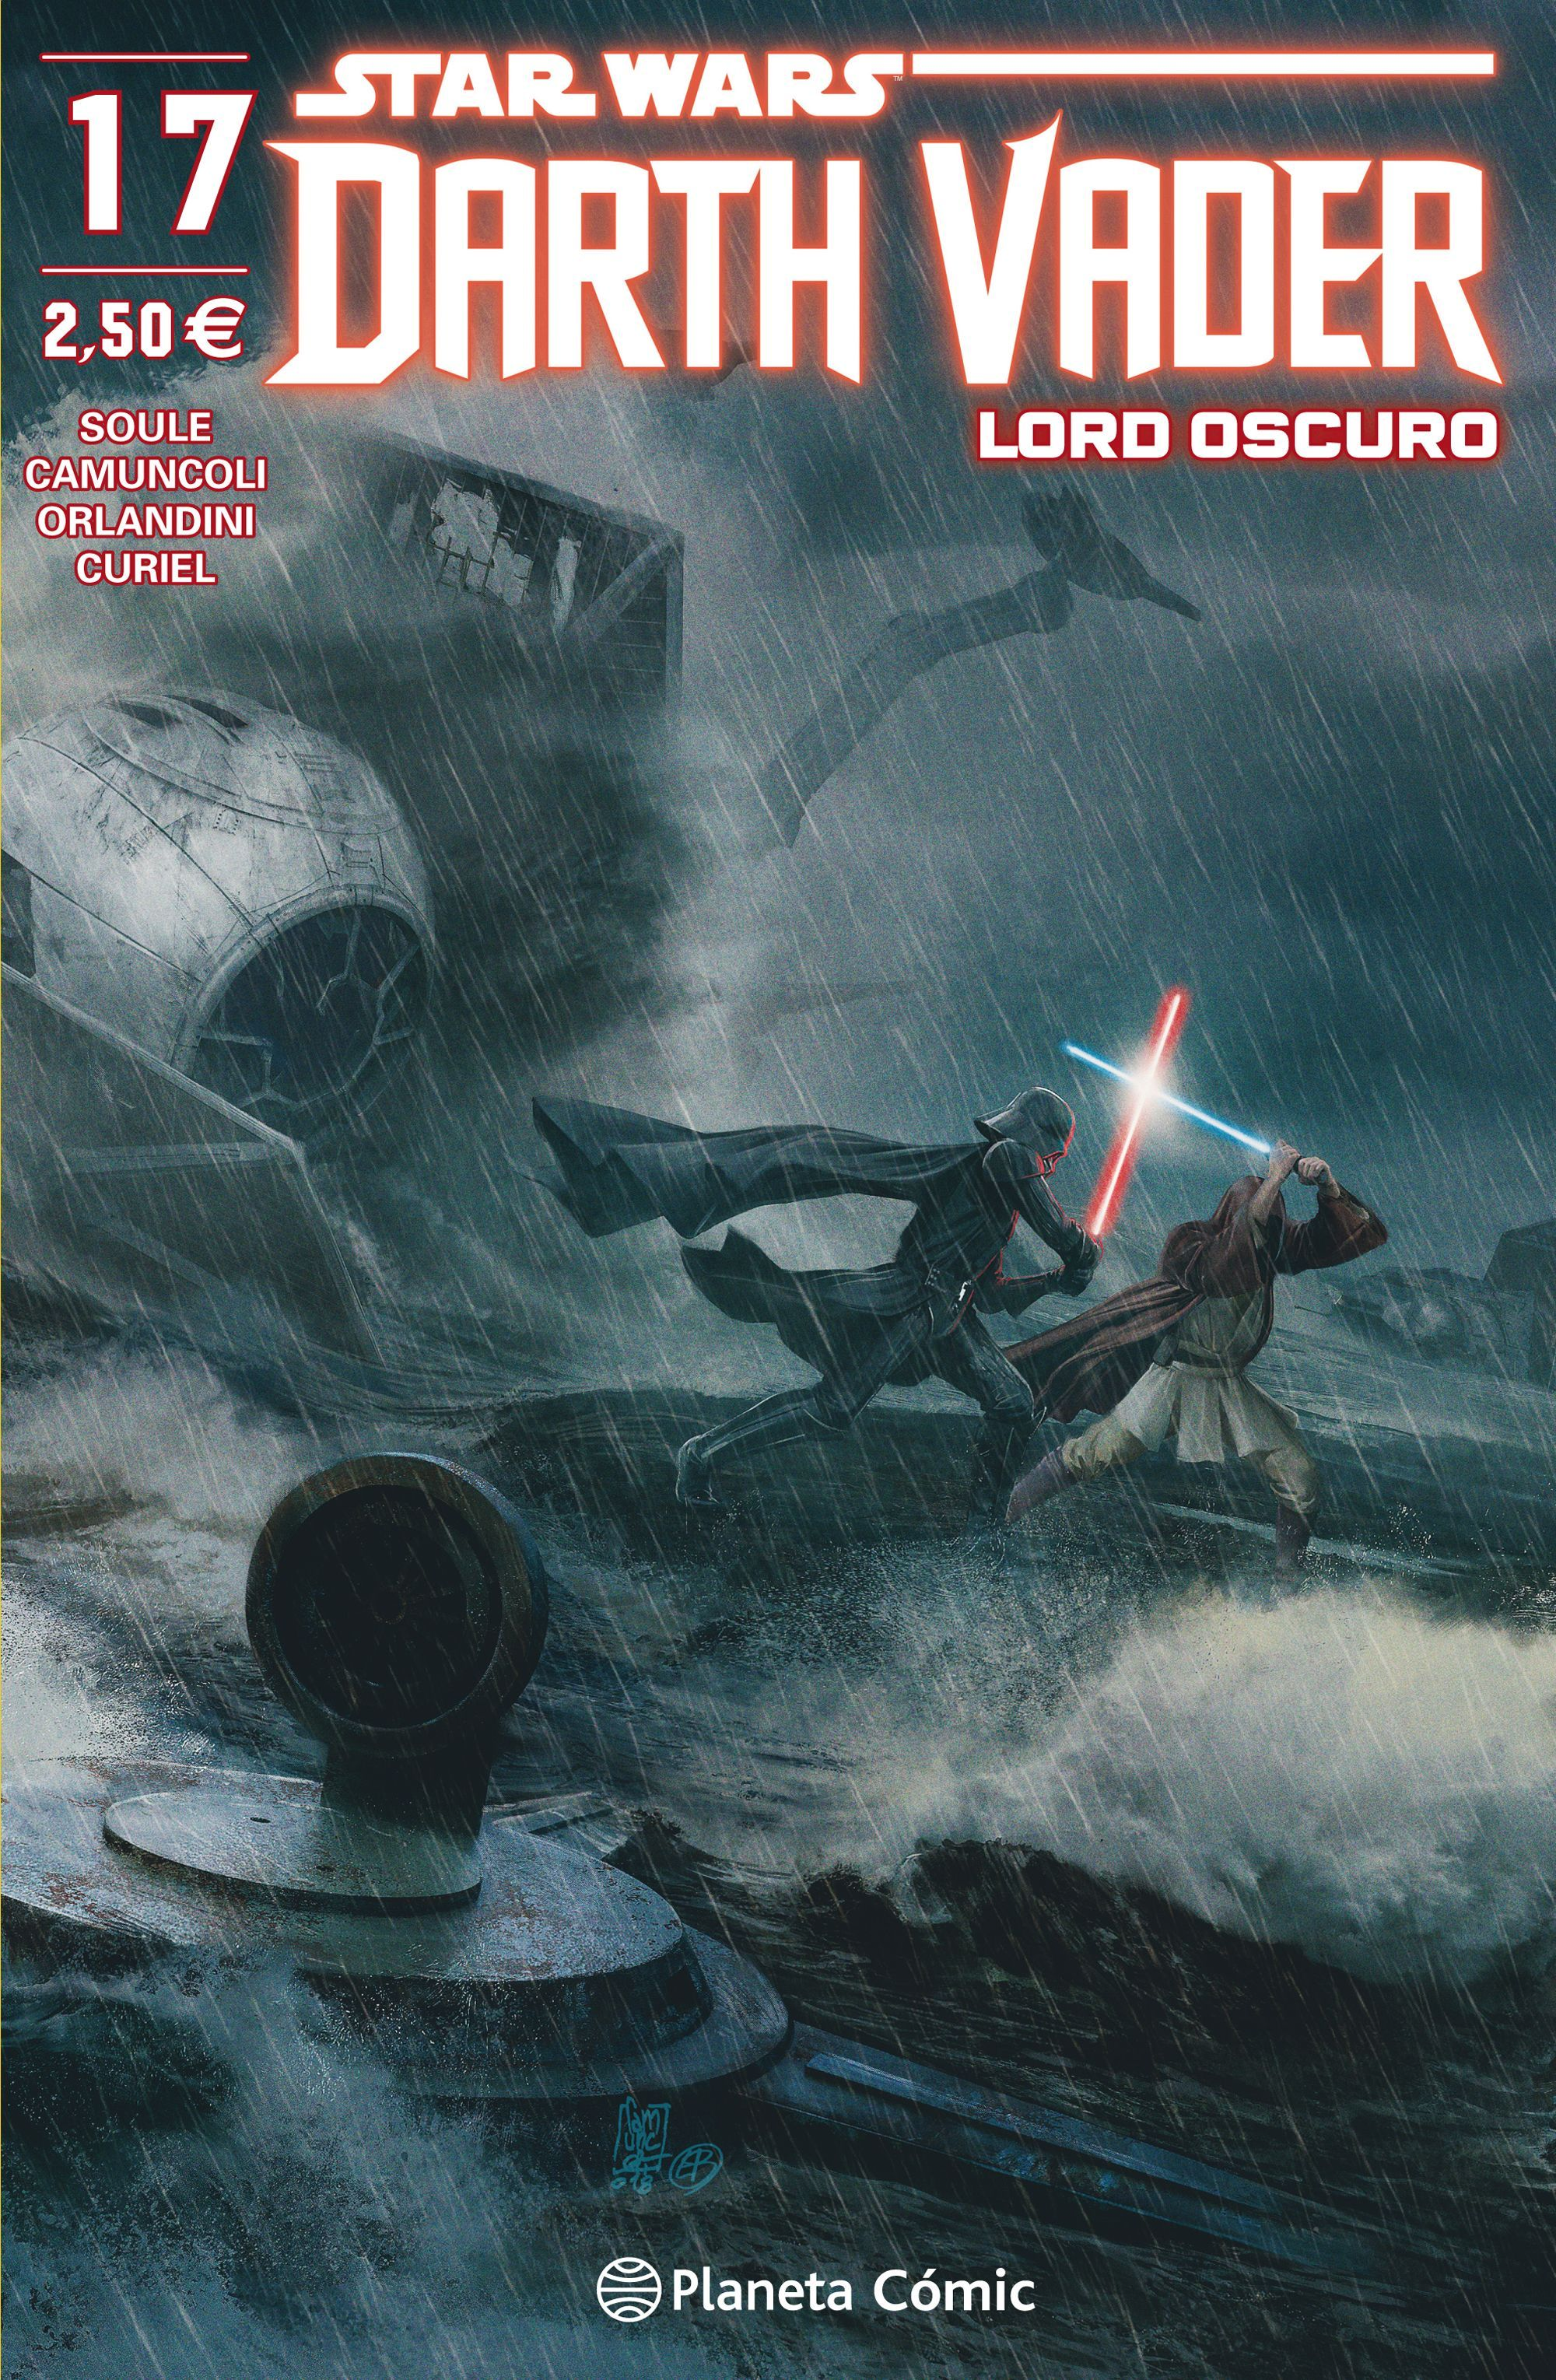 STAR WARS DARTH VADER LORD OSCURO Nº 17